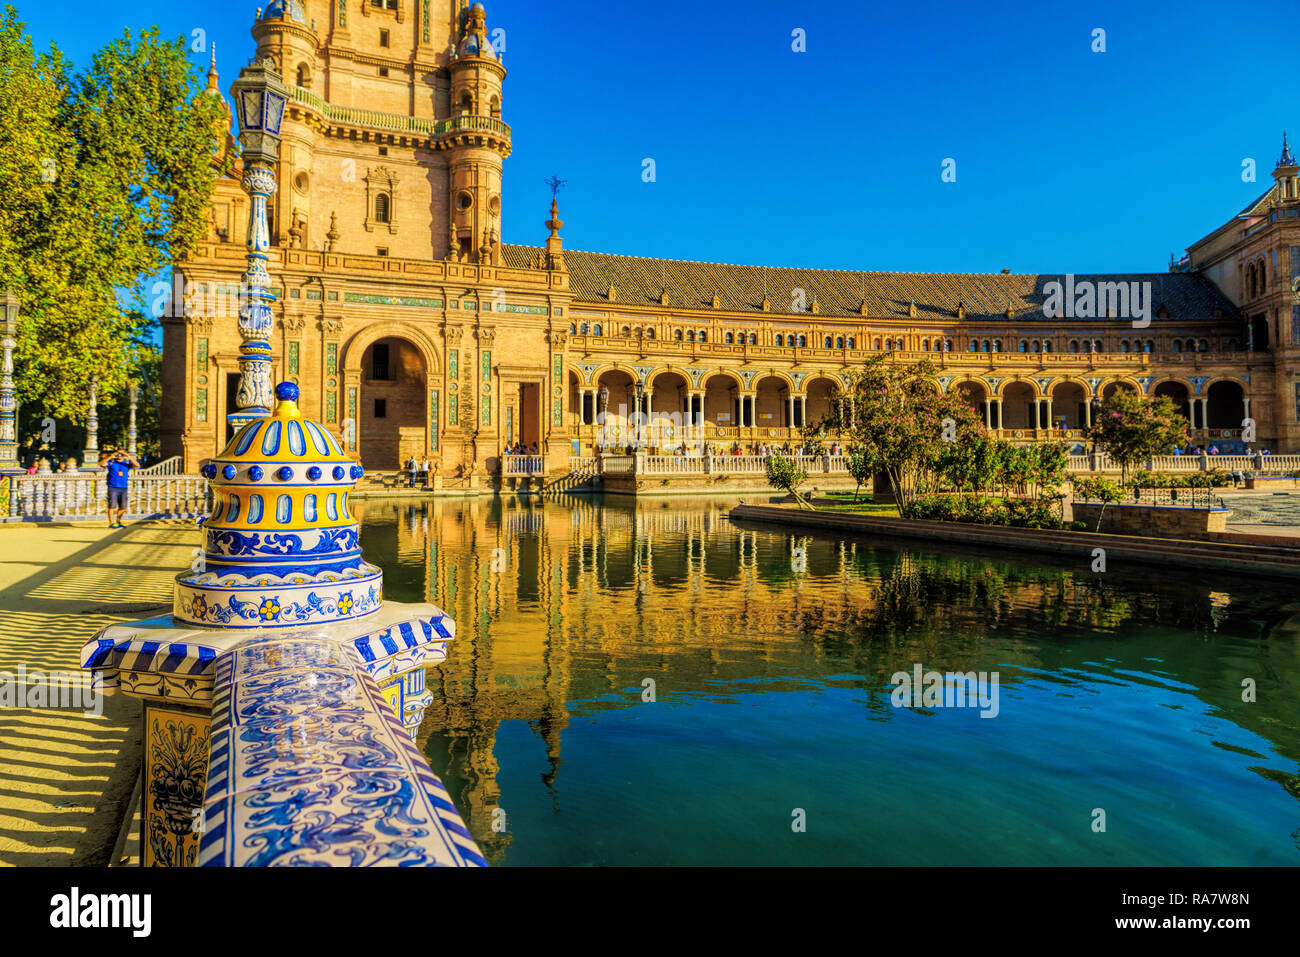 The Plaza de Espana, Seville, Spain built for the Ibero-American Exposition of 1929. It is a landmark example of the Renaissance Revival style in Span - Stock Image